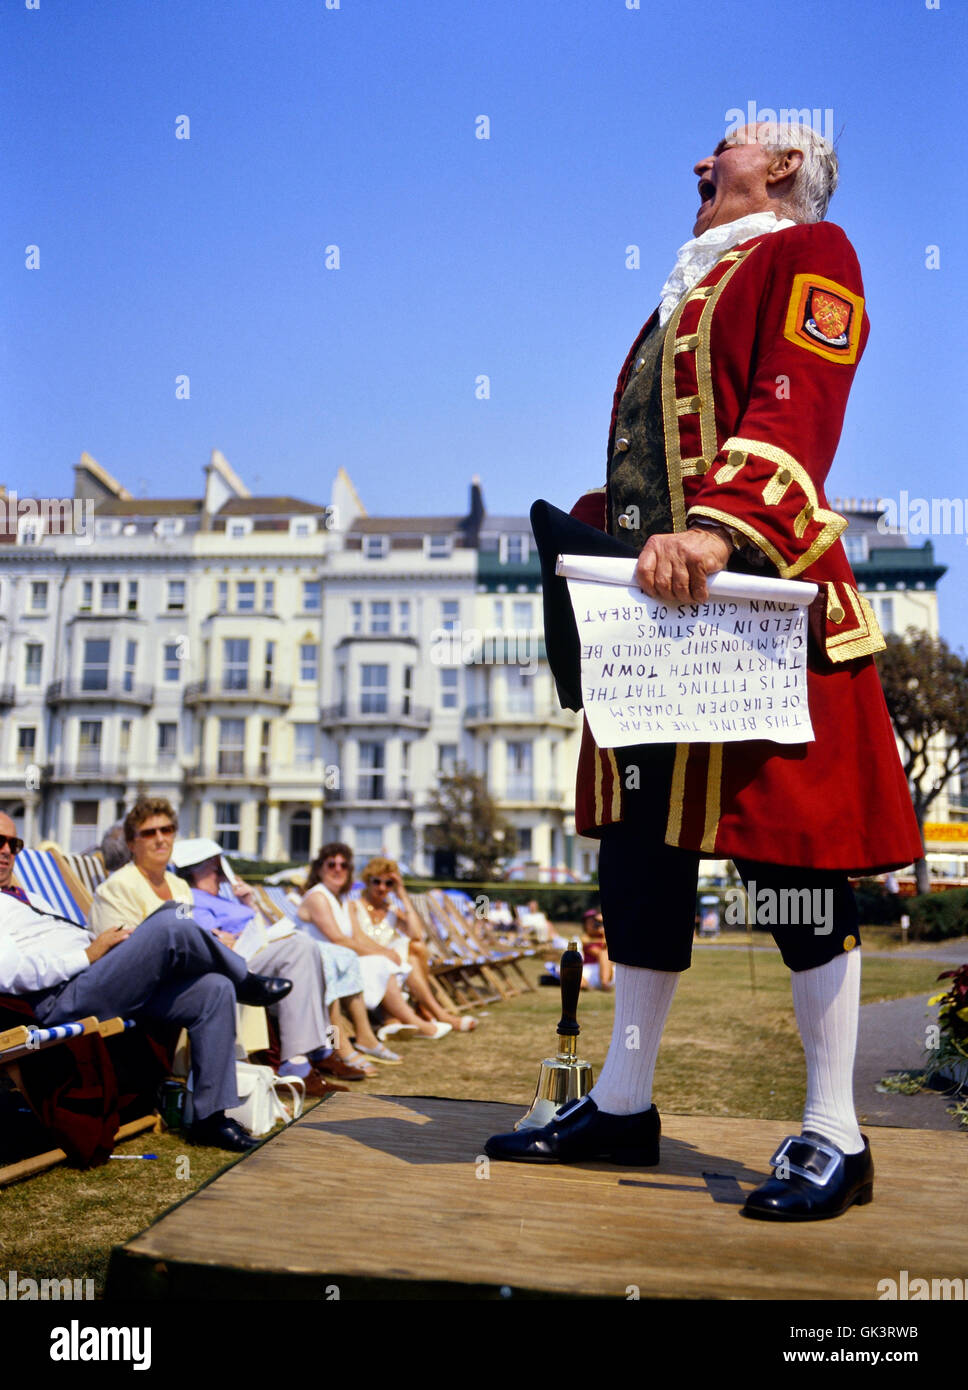 National Town Crier Championships at Hastings. East Sussex. England. UK - Stock Image